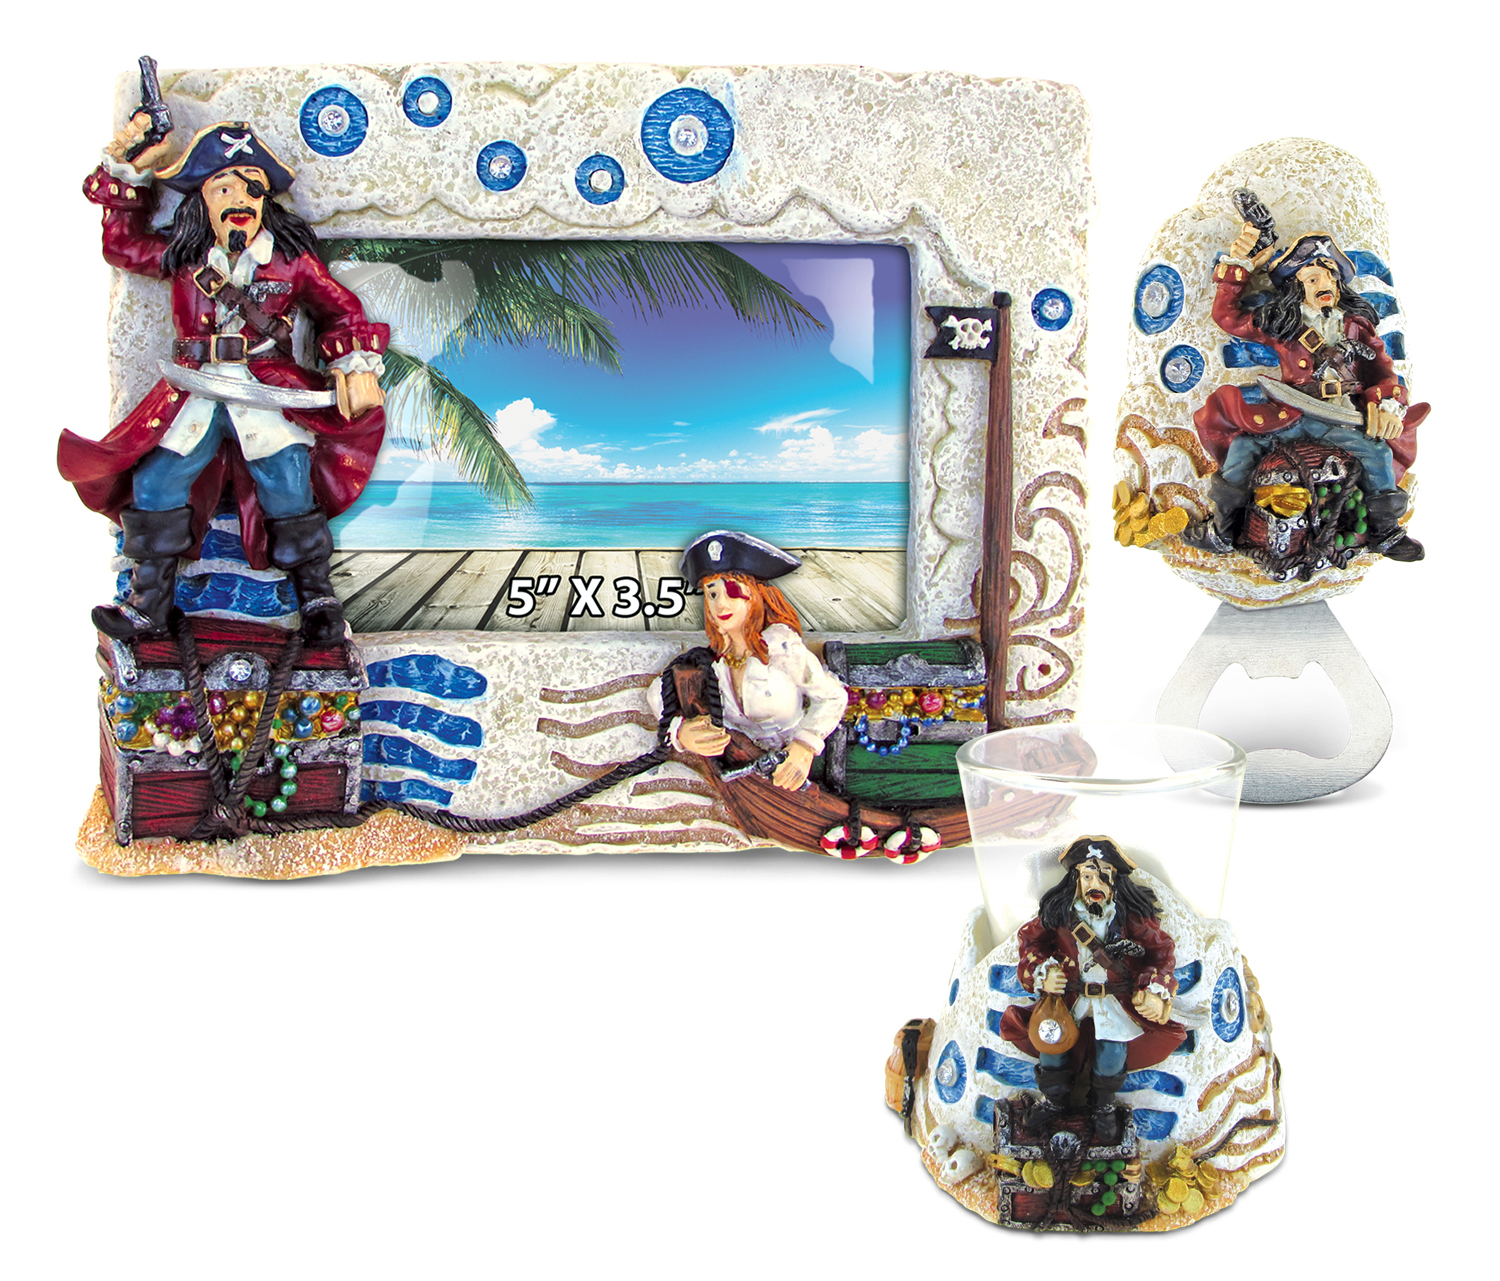 Puzzled Home Decor Value Pack Mermaid Pirate Stone collection - Set of 3 (Value Home Dcor Pack), Multi (Resin)